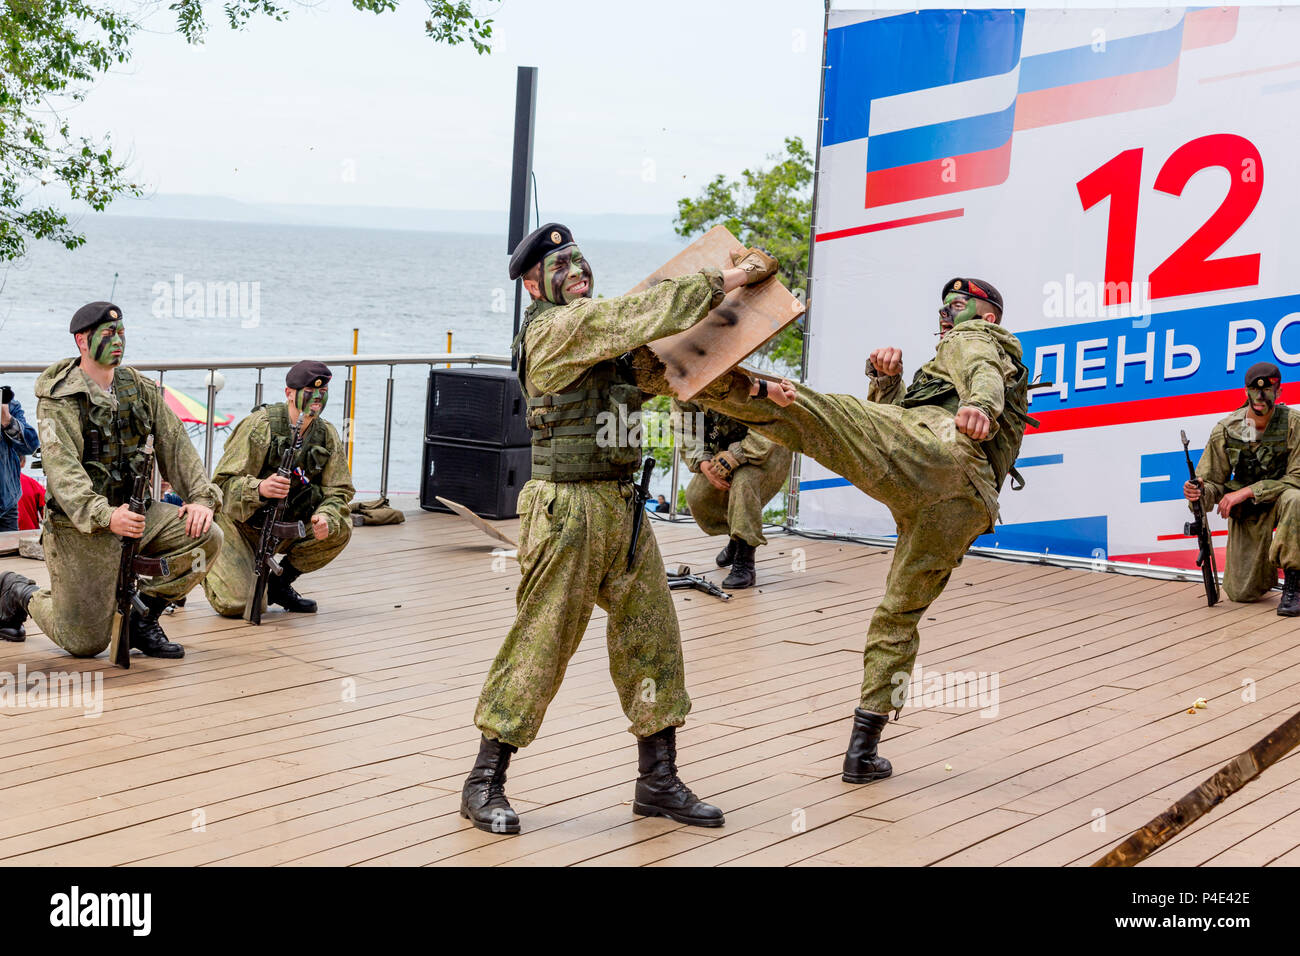 Russia, Vladivostok, 05/09/2018. Armed soldiers of Russian Army's Special Forces perform on stage in a honor of Russia Day. Annual celebration Russia  - Stock Image